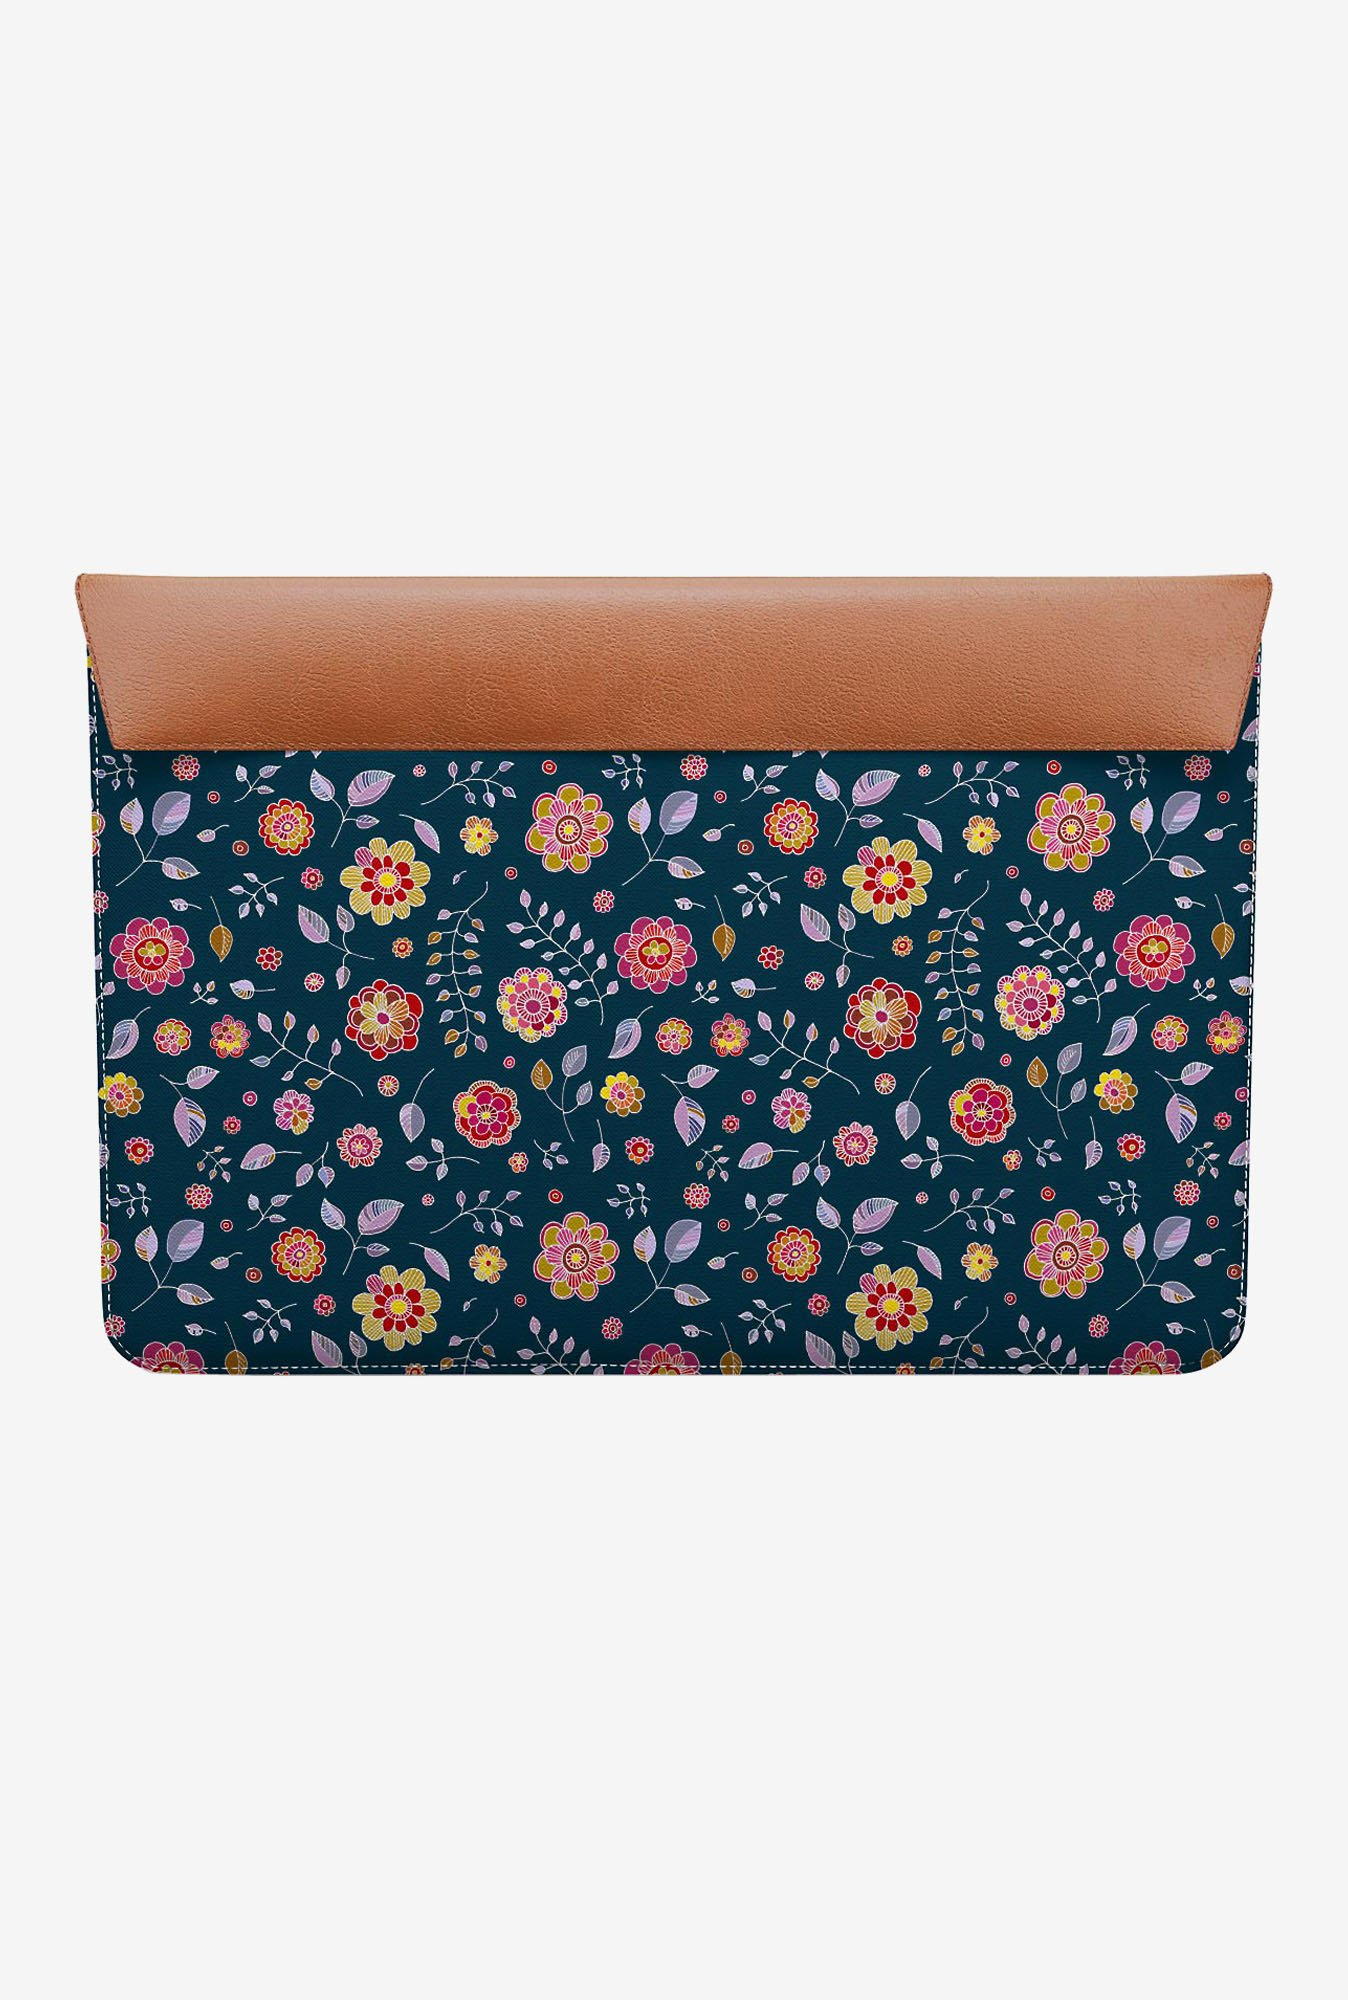 DailyObjects Bright Flowers MacBook Air 13 Envelope Sleeve